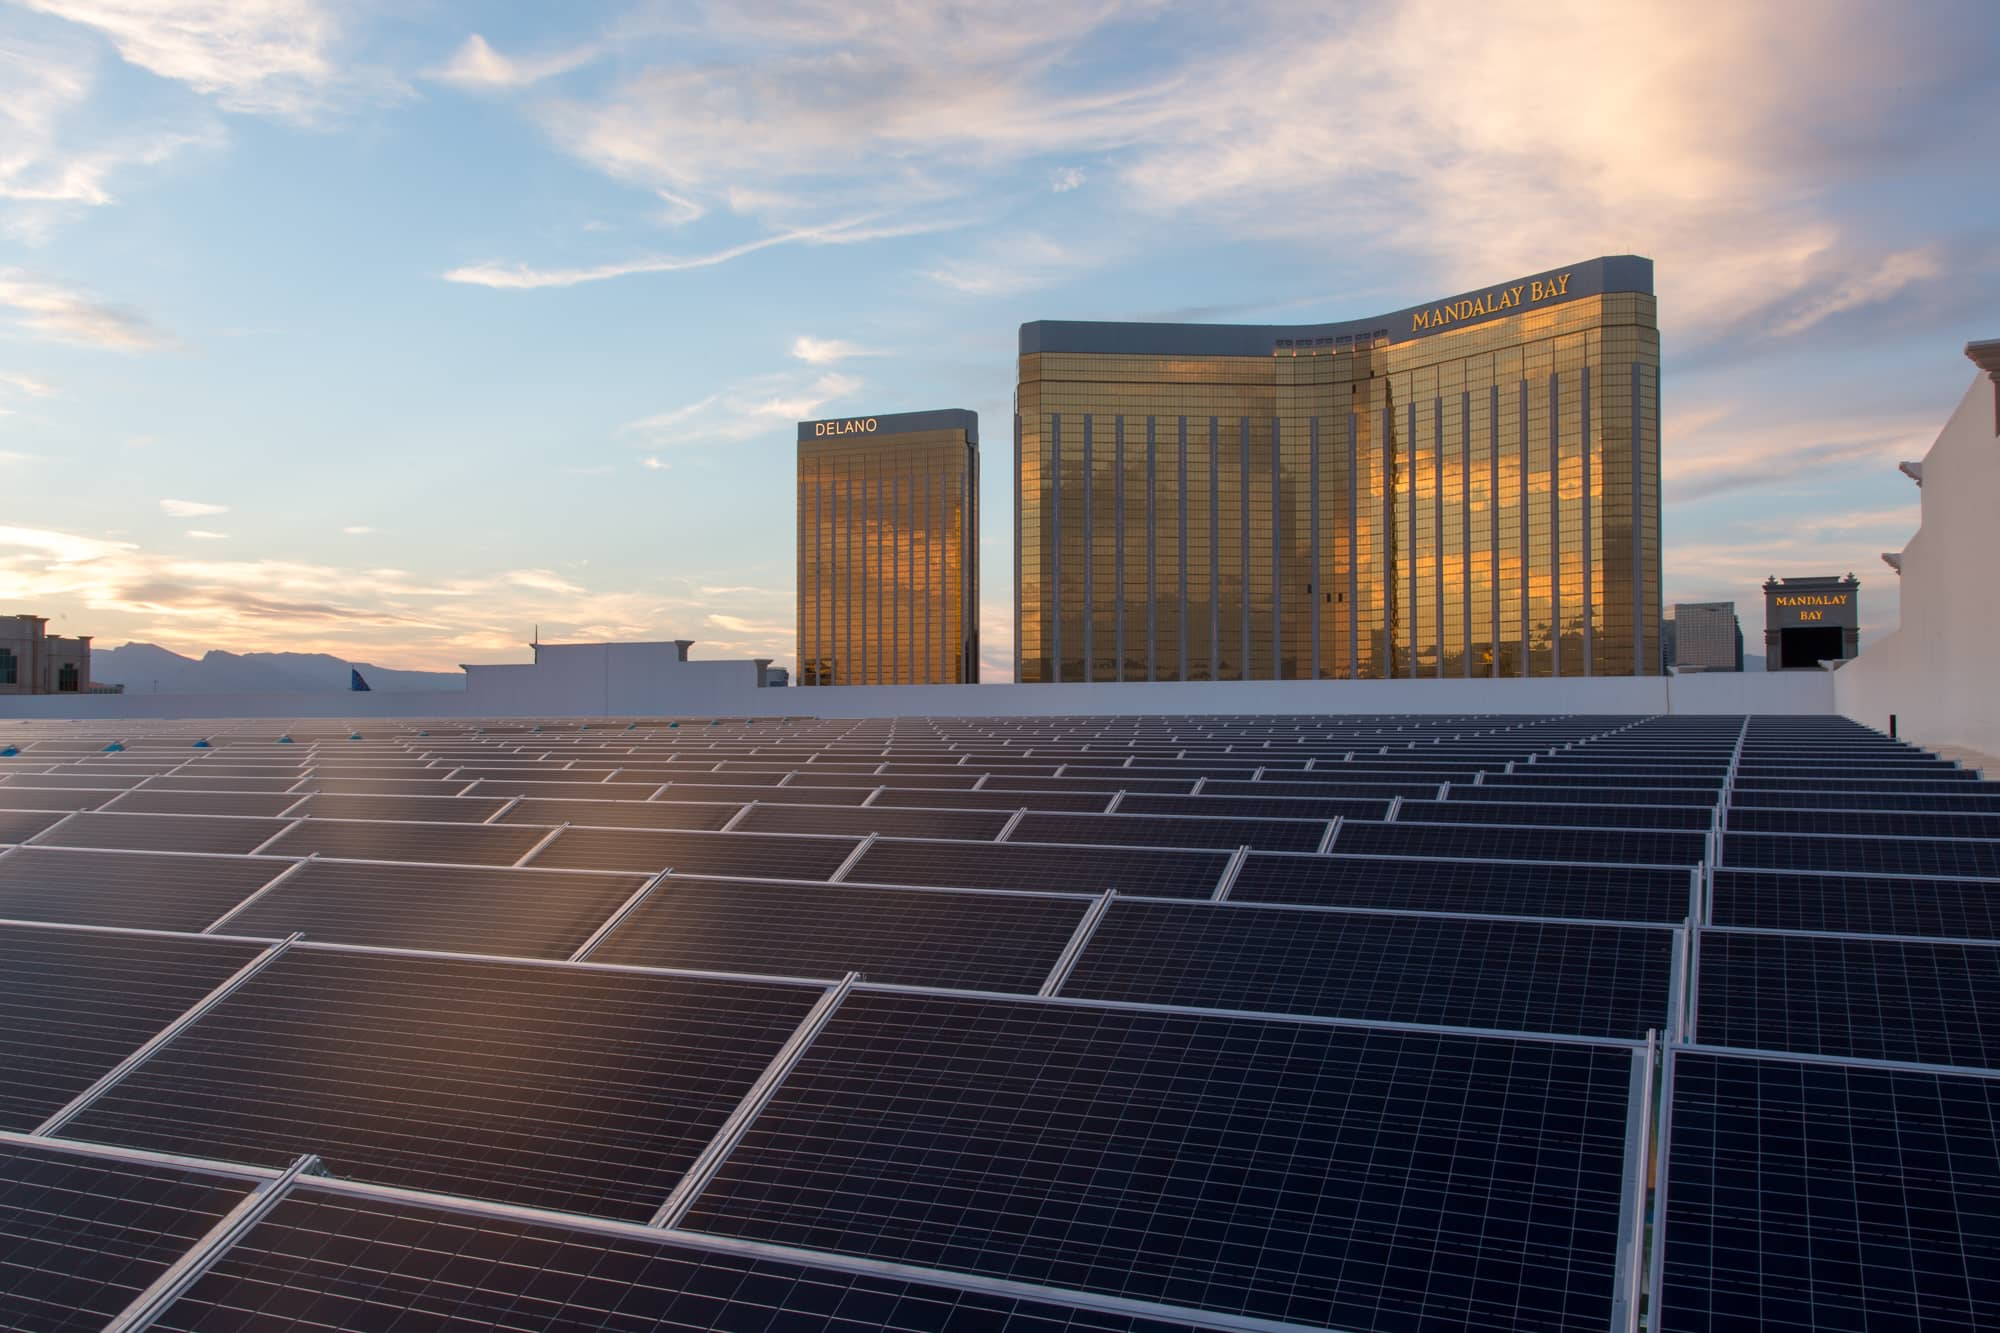 20160608_nrg_mandalay_bay_0103-1 MGM Resorts And NRG Complete U.S.' Largest Rooftop Solar Project